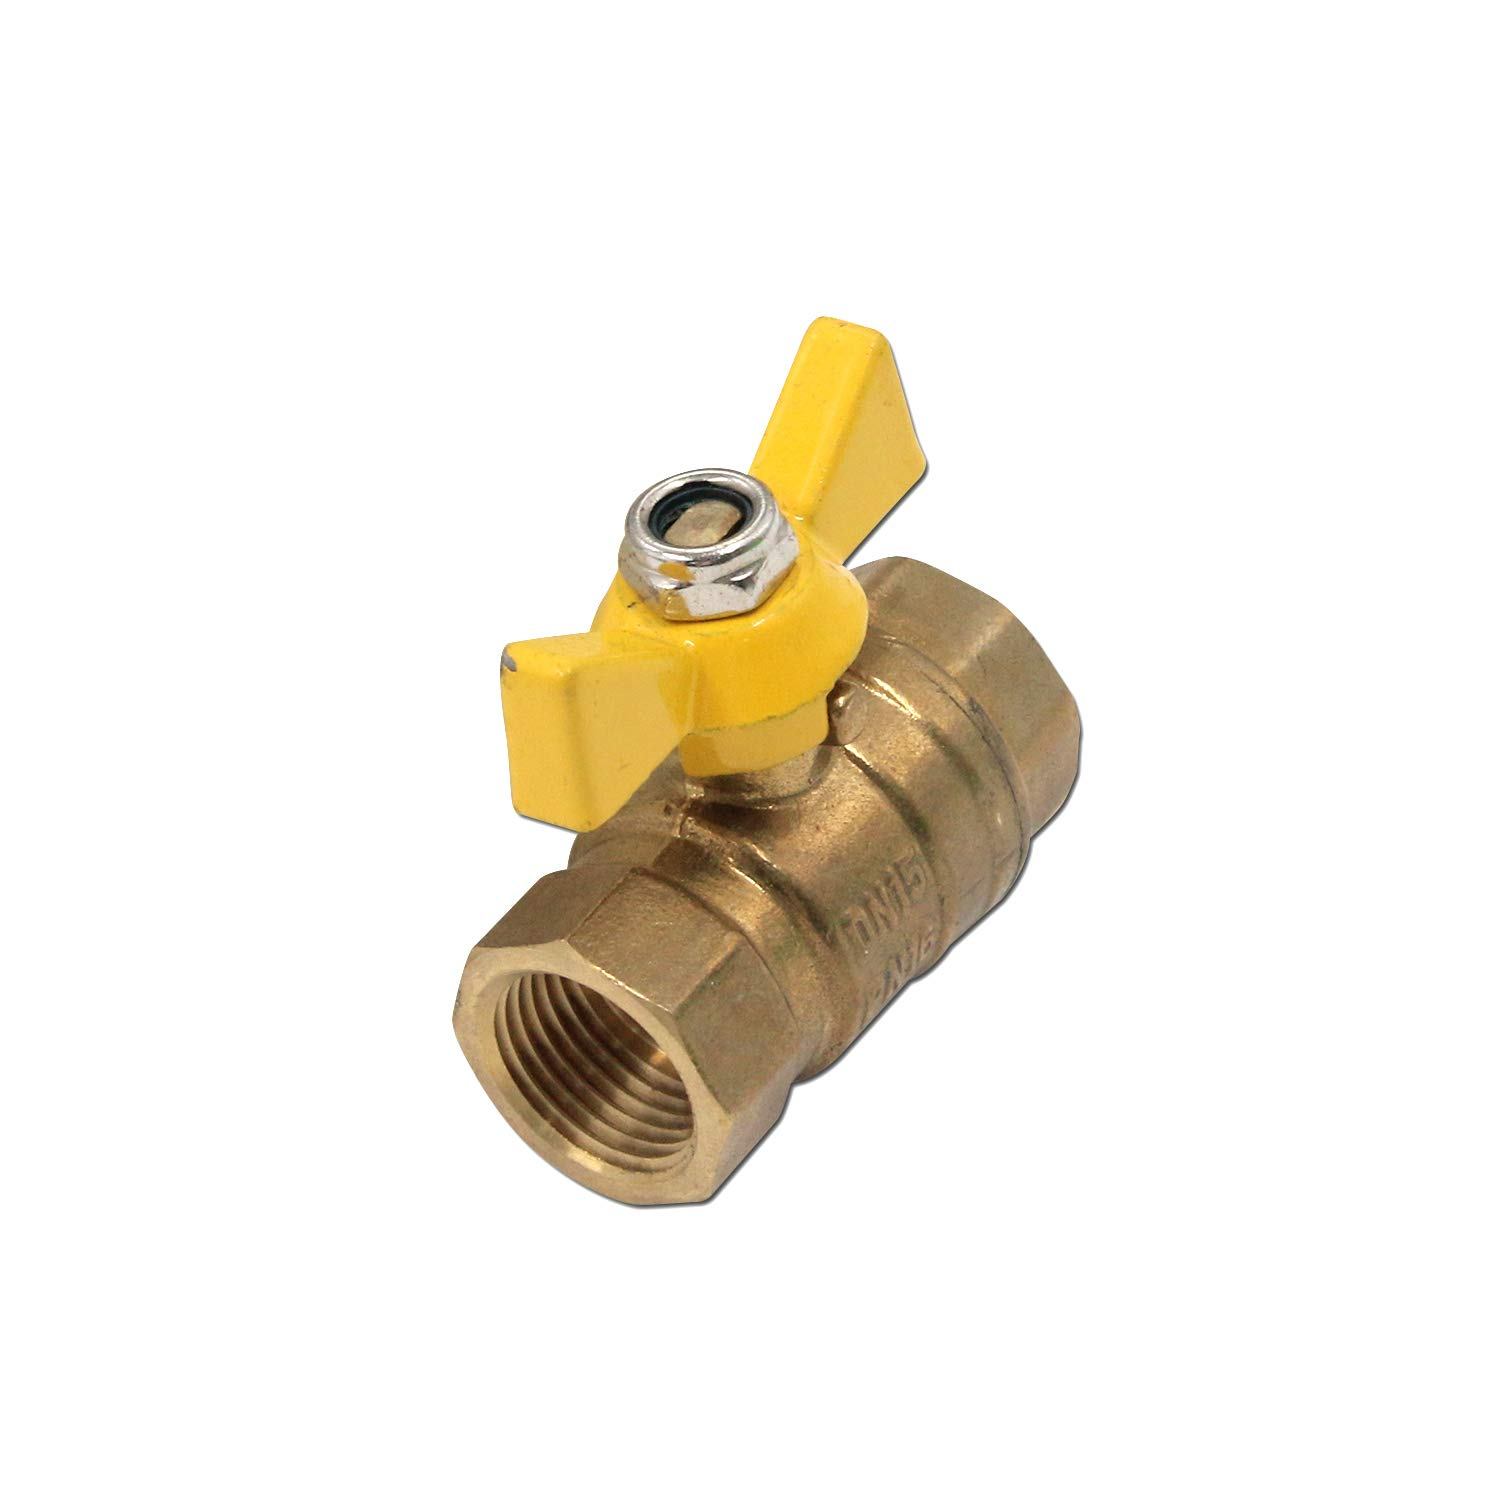 Tulead Ball Valve Mini Brass Valve Gas Valve Shut Off Tool 1/2